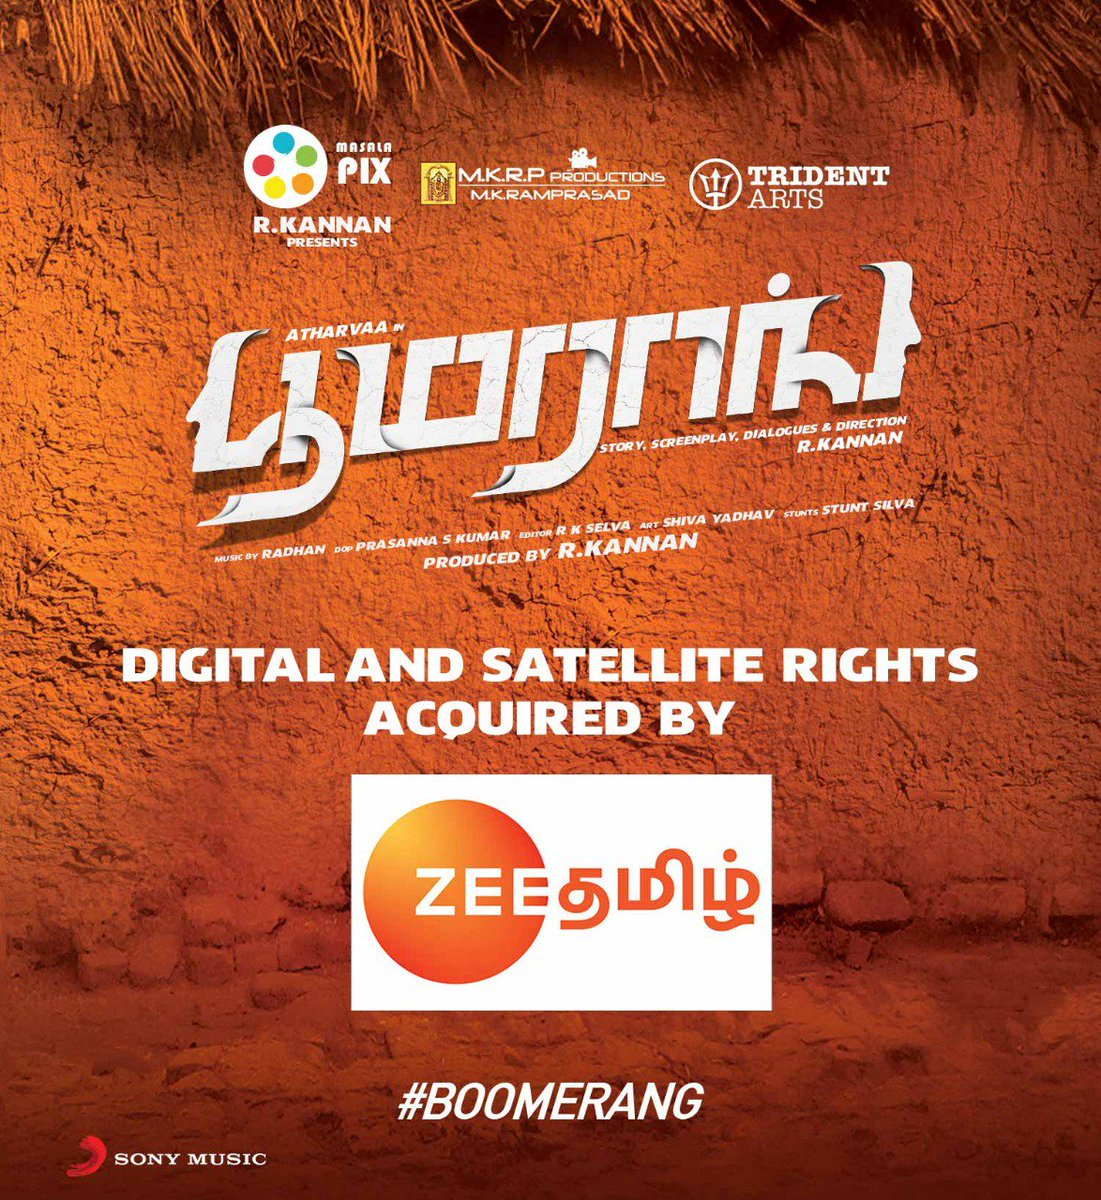 Boomerang Digital And Satellite Rights Acquired By @ZeeTamil   #Boomerang  @Atharvaamurali @RJ_Balaji @akash_megha @actorsathish @radhanmusic @Actress_Indhuja @Dir_kannanR @SonyMusicSouth @tridentartsoffl @DoneChannel1 @digitallynow